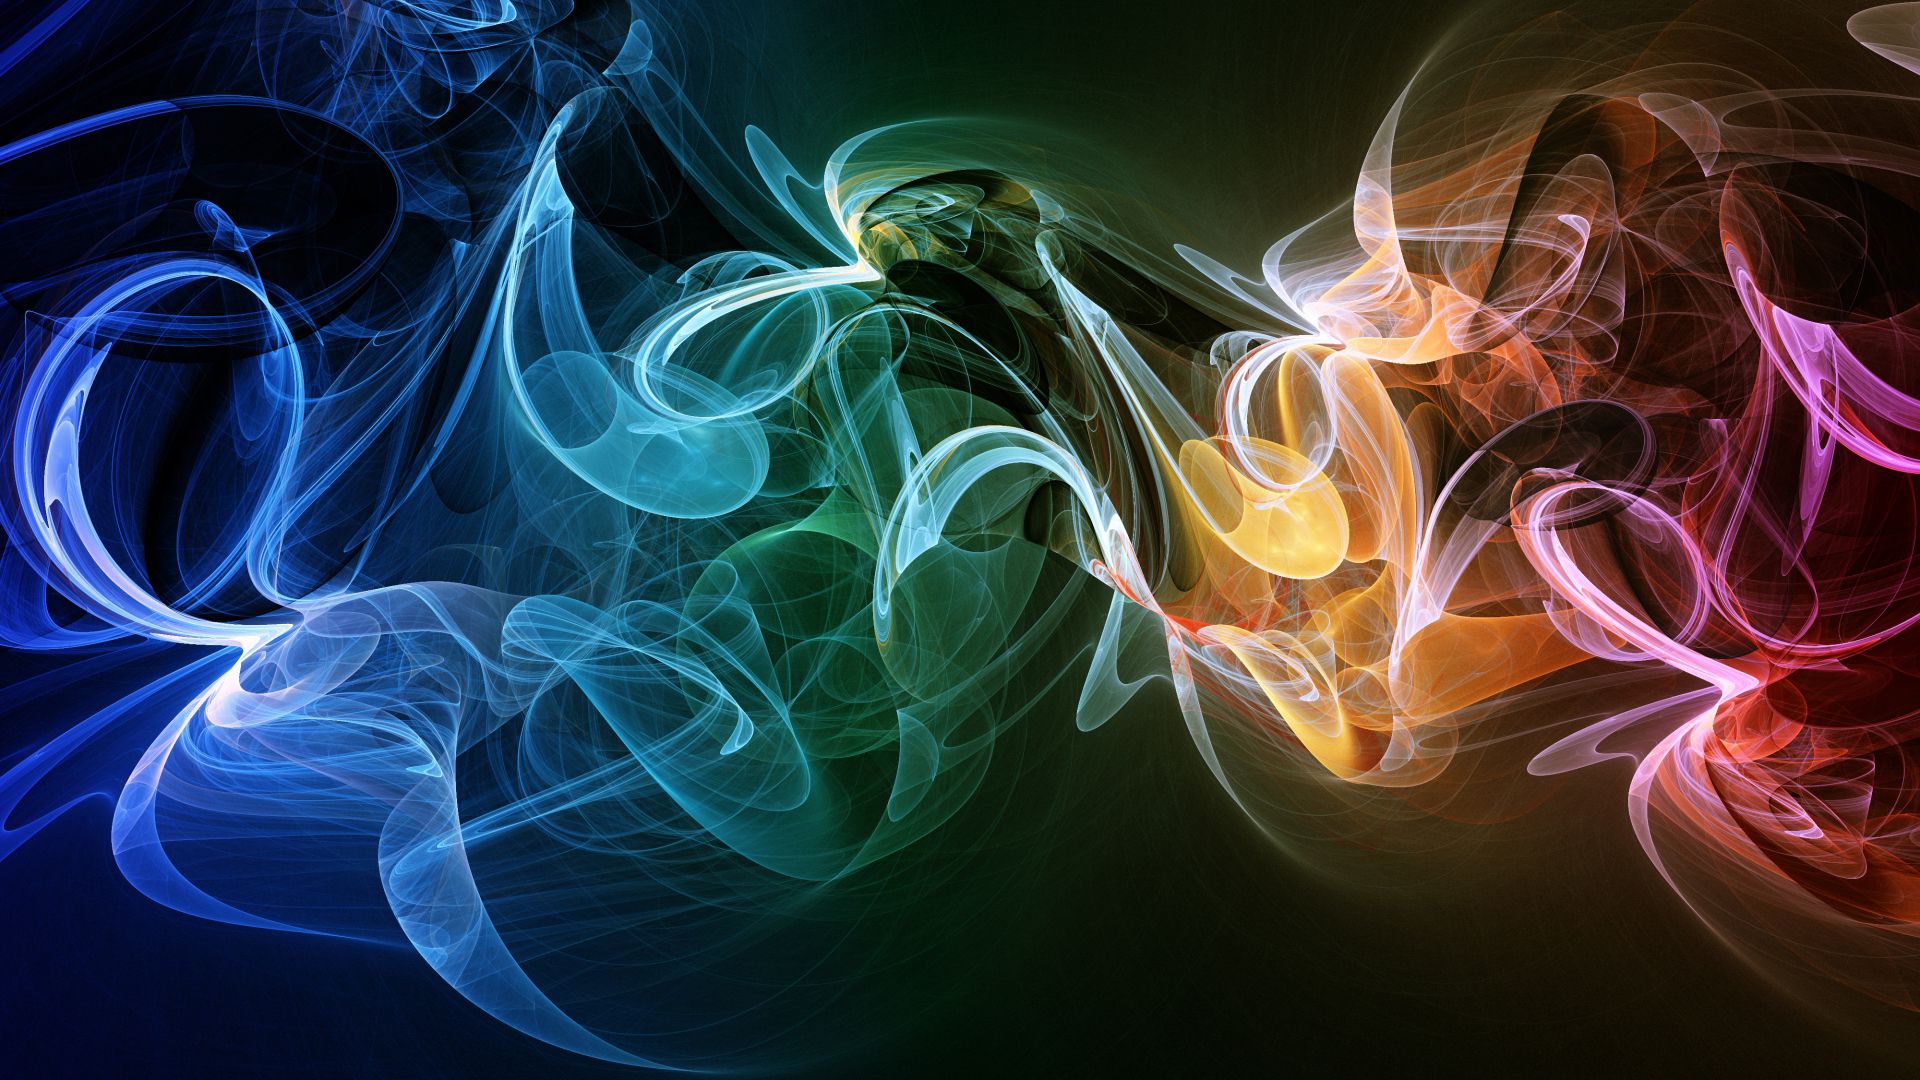 best abstract hd wallpaper 1920x1080 - photo #18